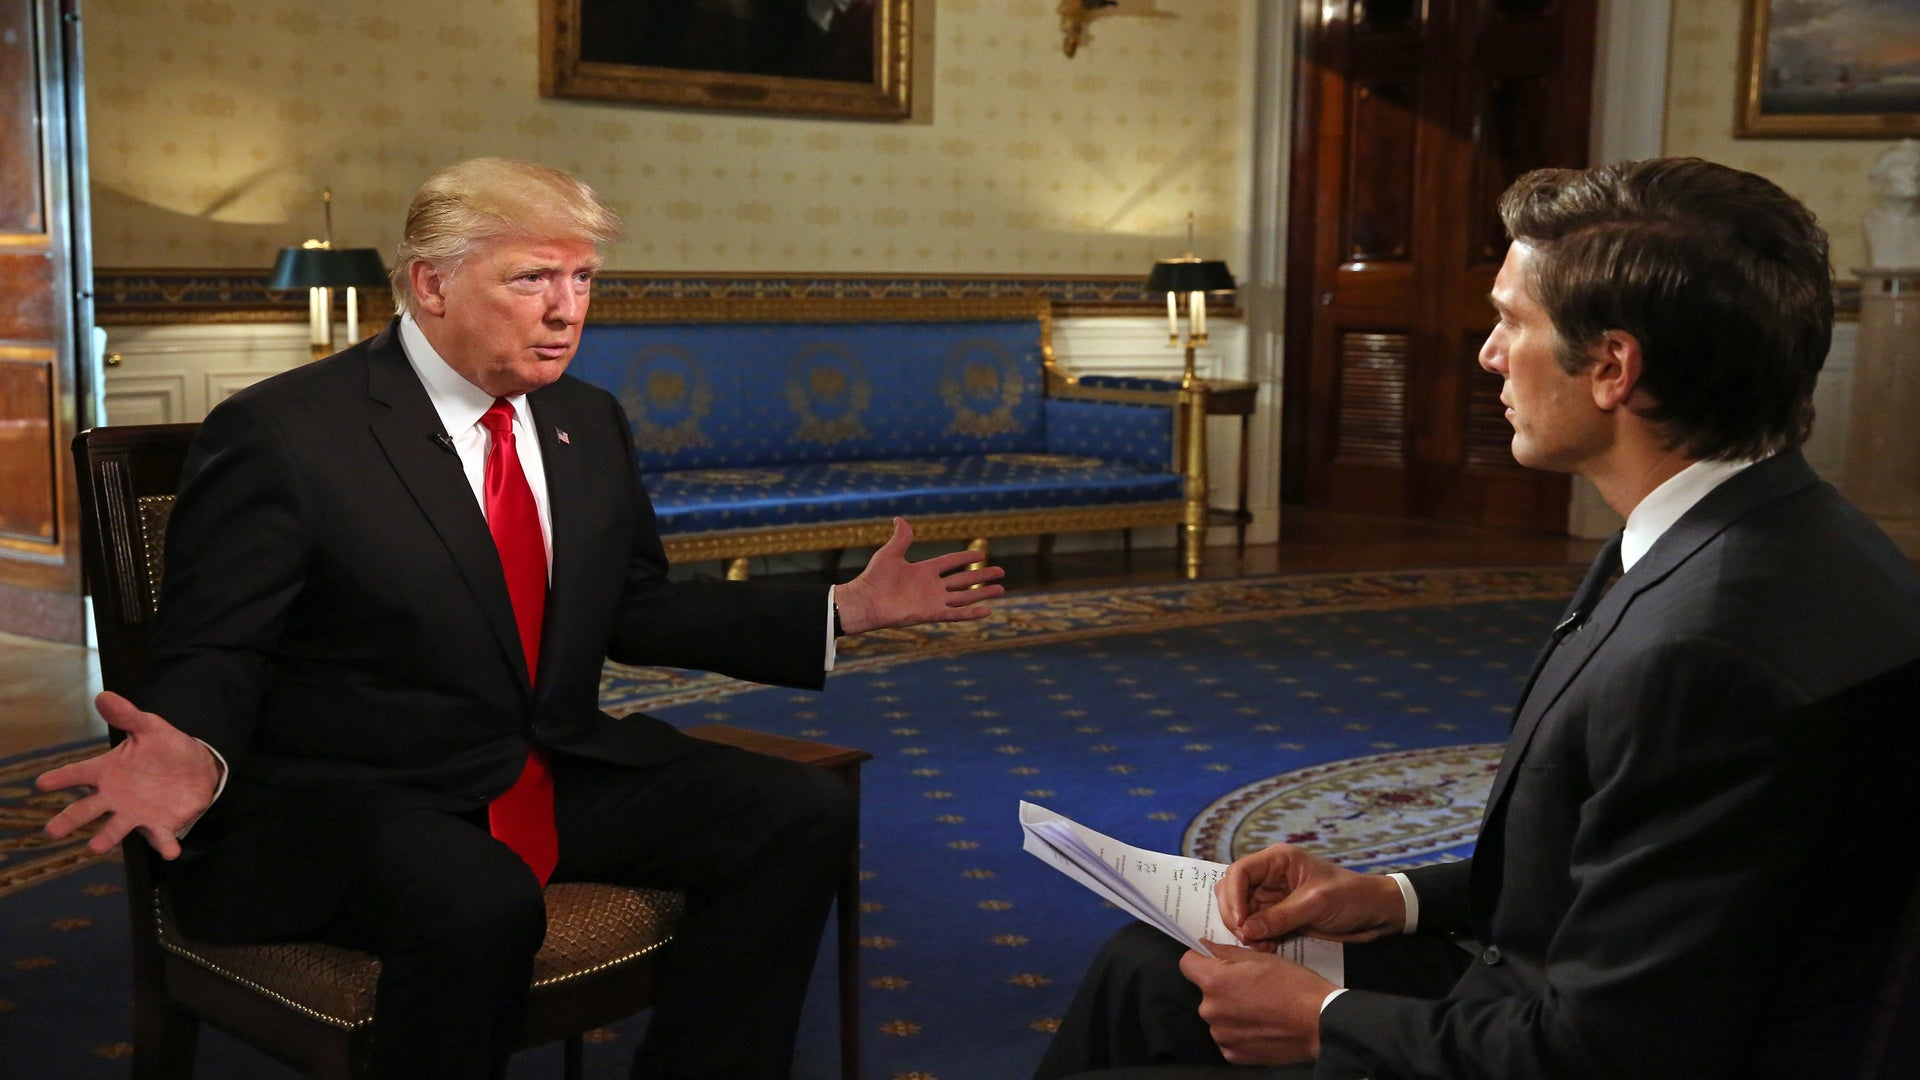 Trump Repeats Unproven Claims And Attacks Critics In His First Extended Interview As President